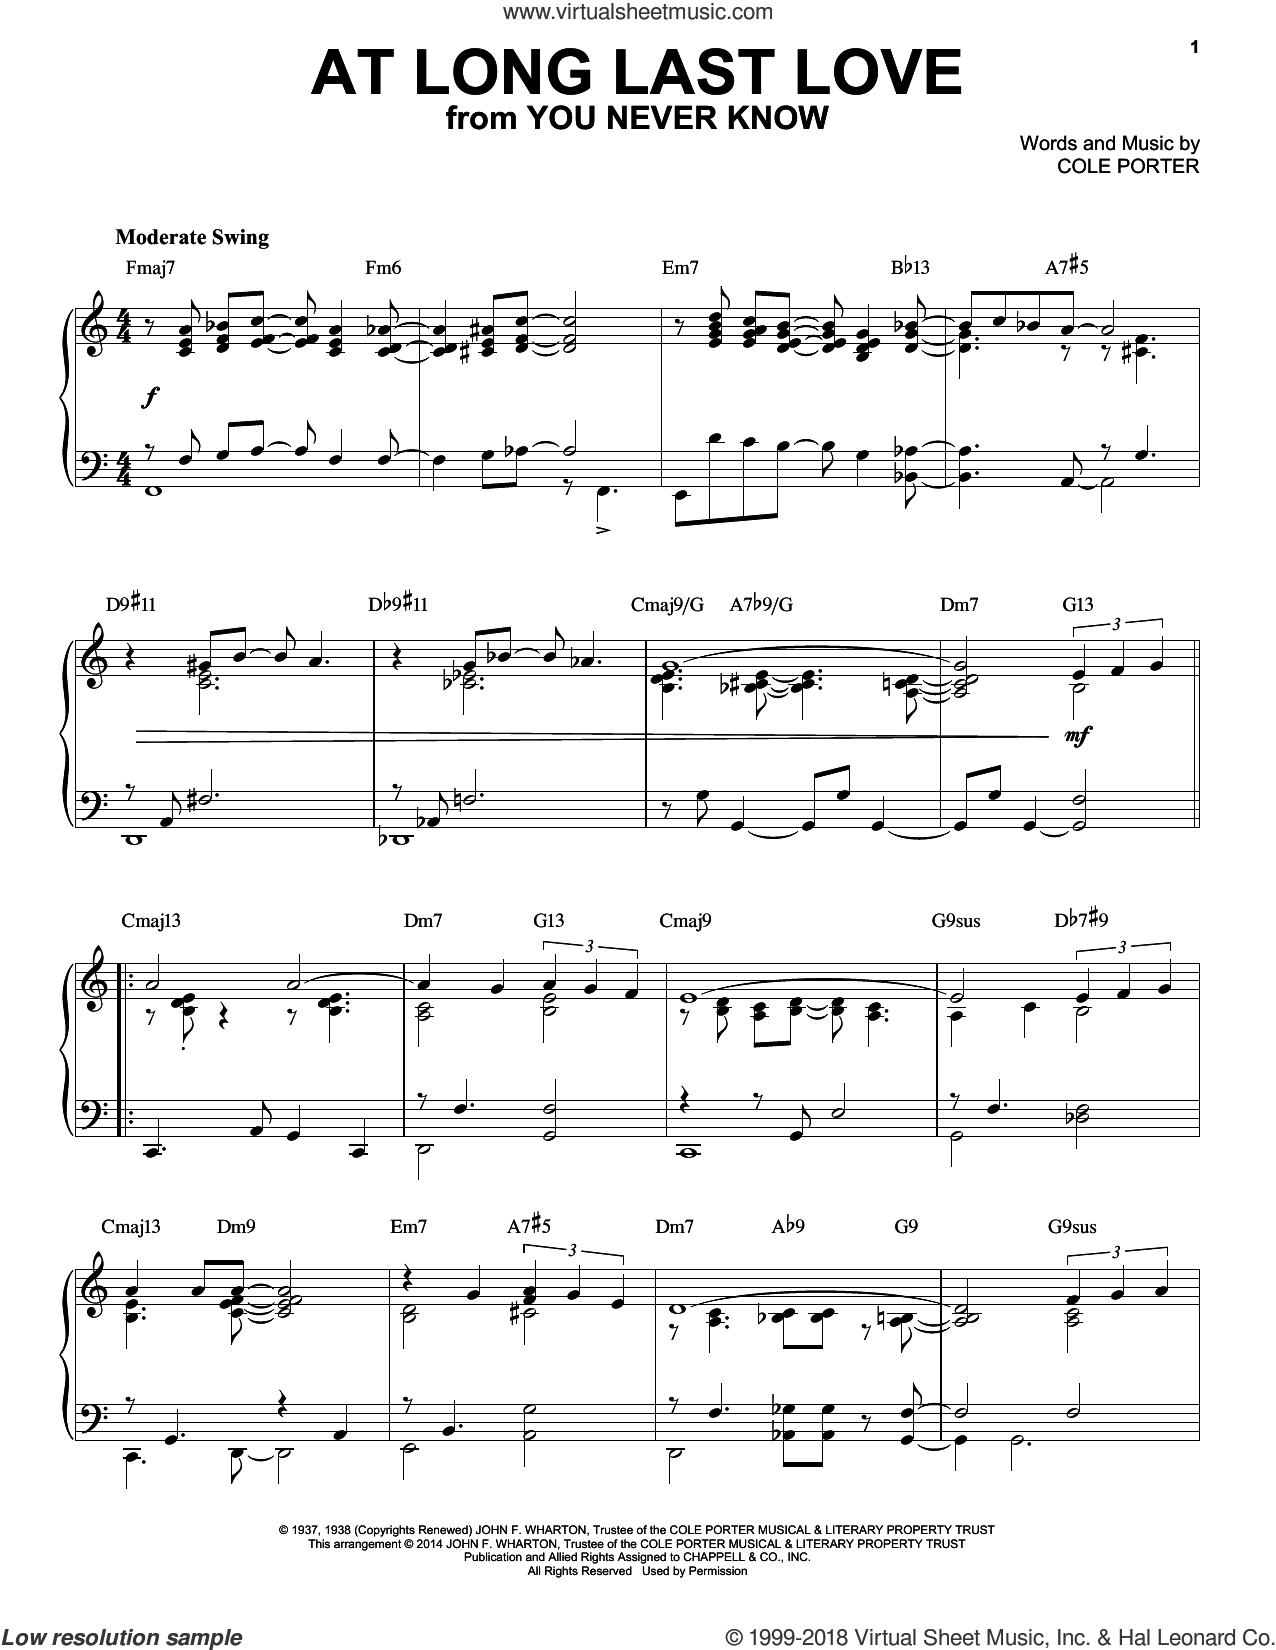 At Long Last Love [Jazz version] (arr. Brent Edstrom) sheet music for piano solo by Cole Porter and Frank Sinatra, intermediate skill level